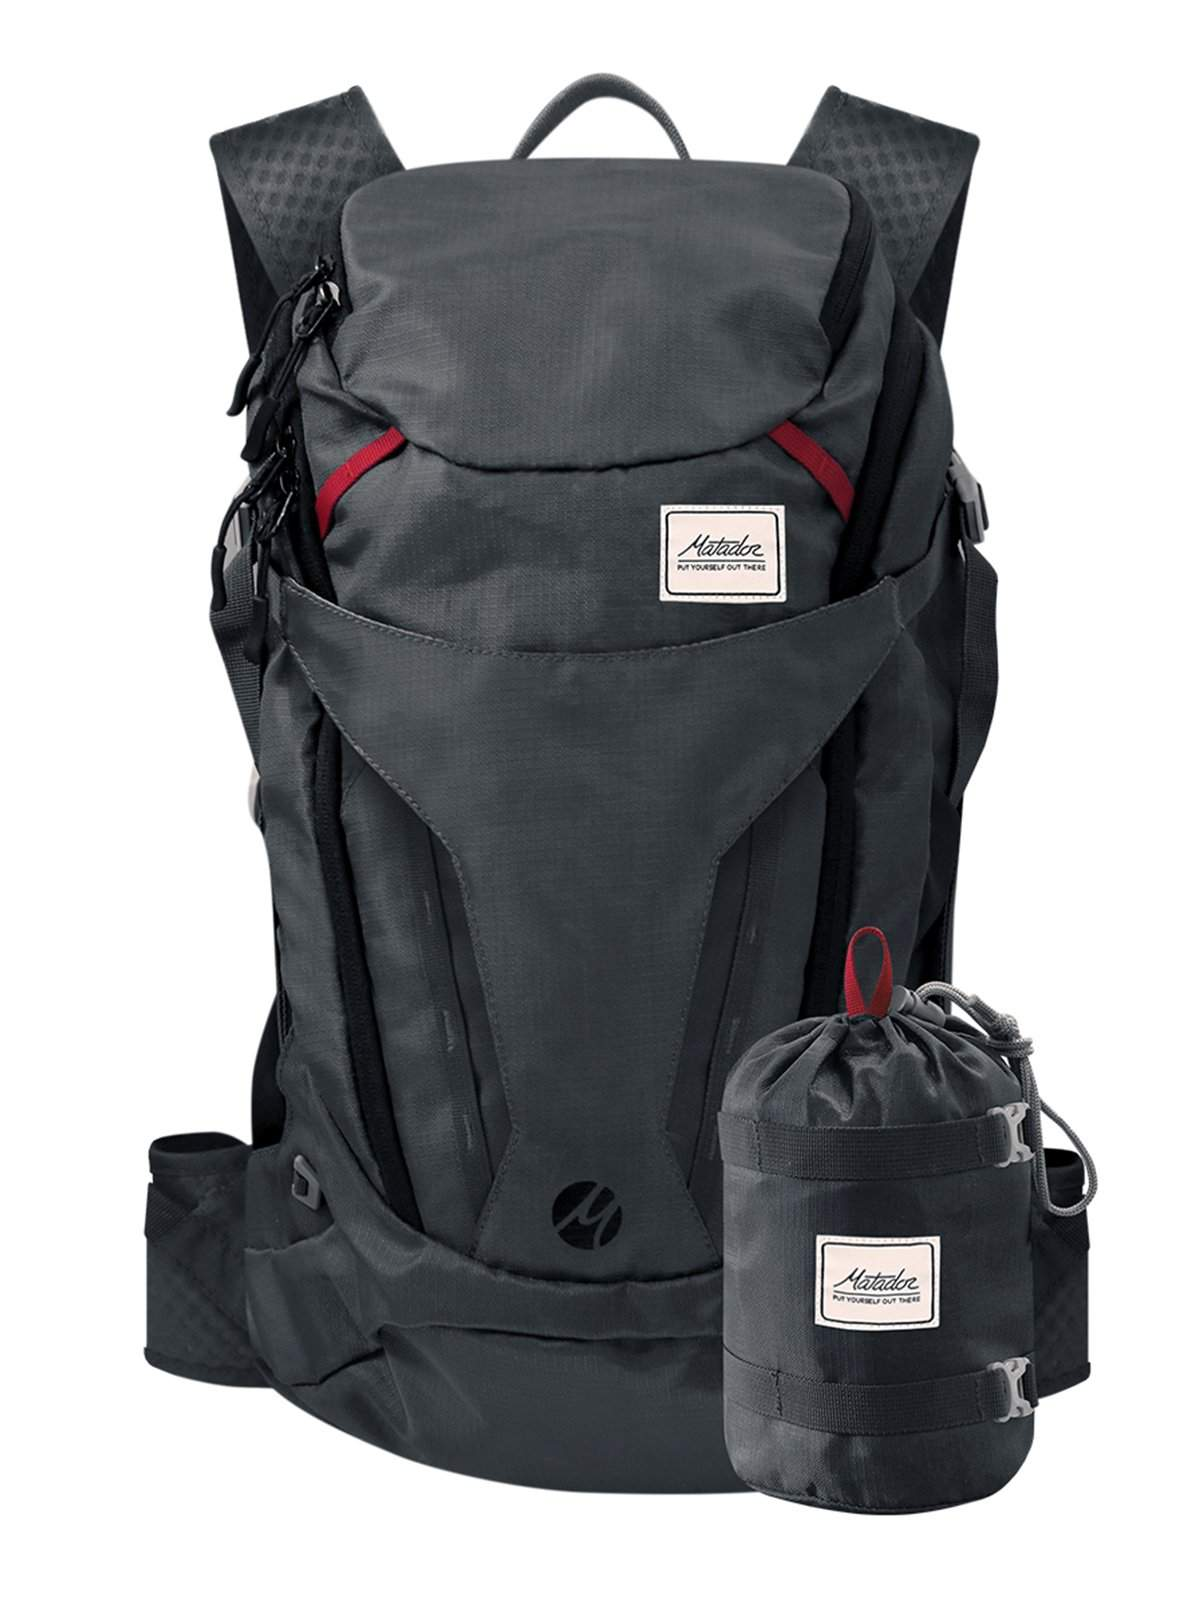 Matador Beast28 Technical Packable Backpack - MORE by Morello Indonesia